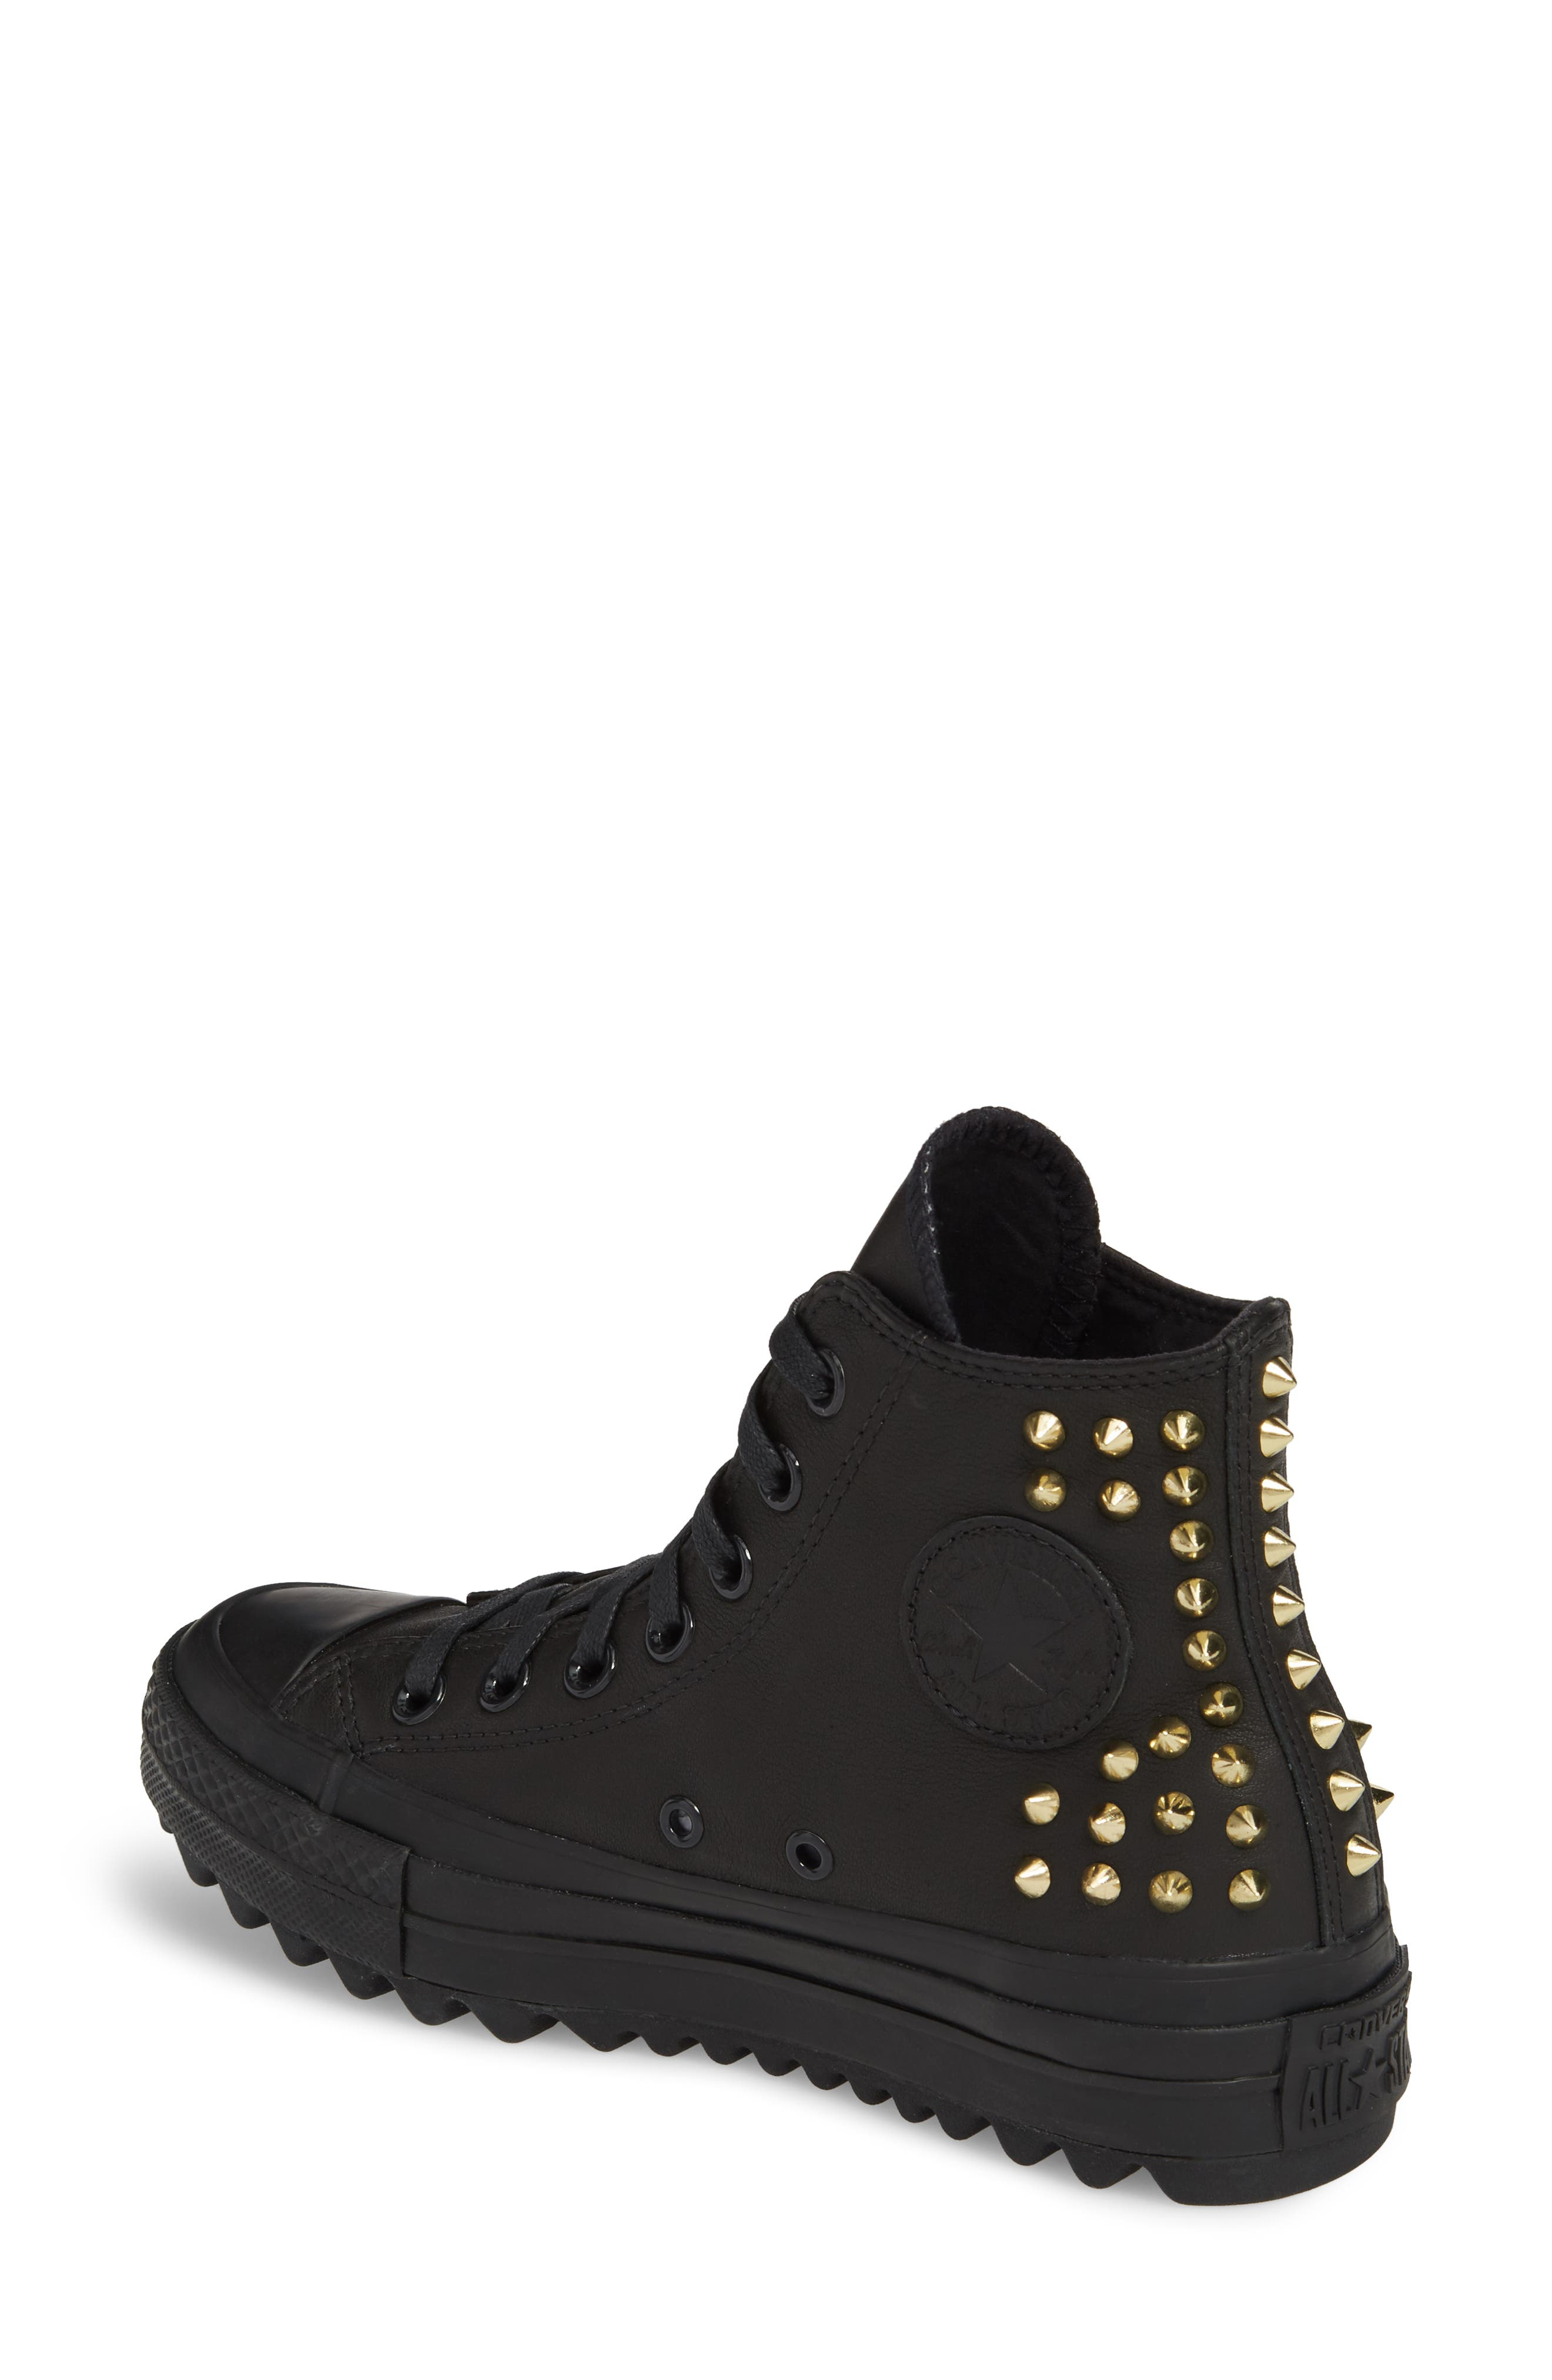 Chuck Taylor<sup>®</sup> All Star<sup>®</sup> Lift Ripple Studded High Top Sneaker,                             Alternate thumbnail 2, color,                             001